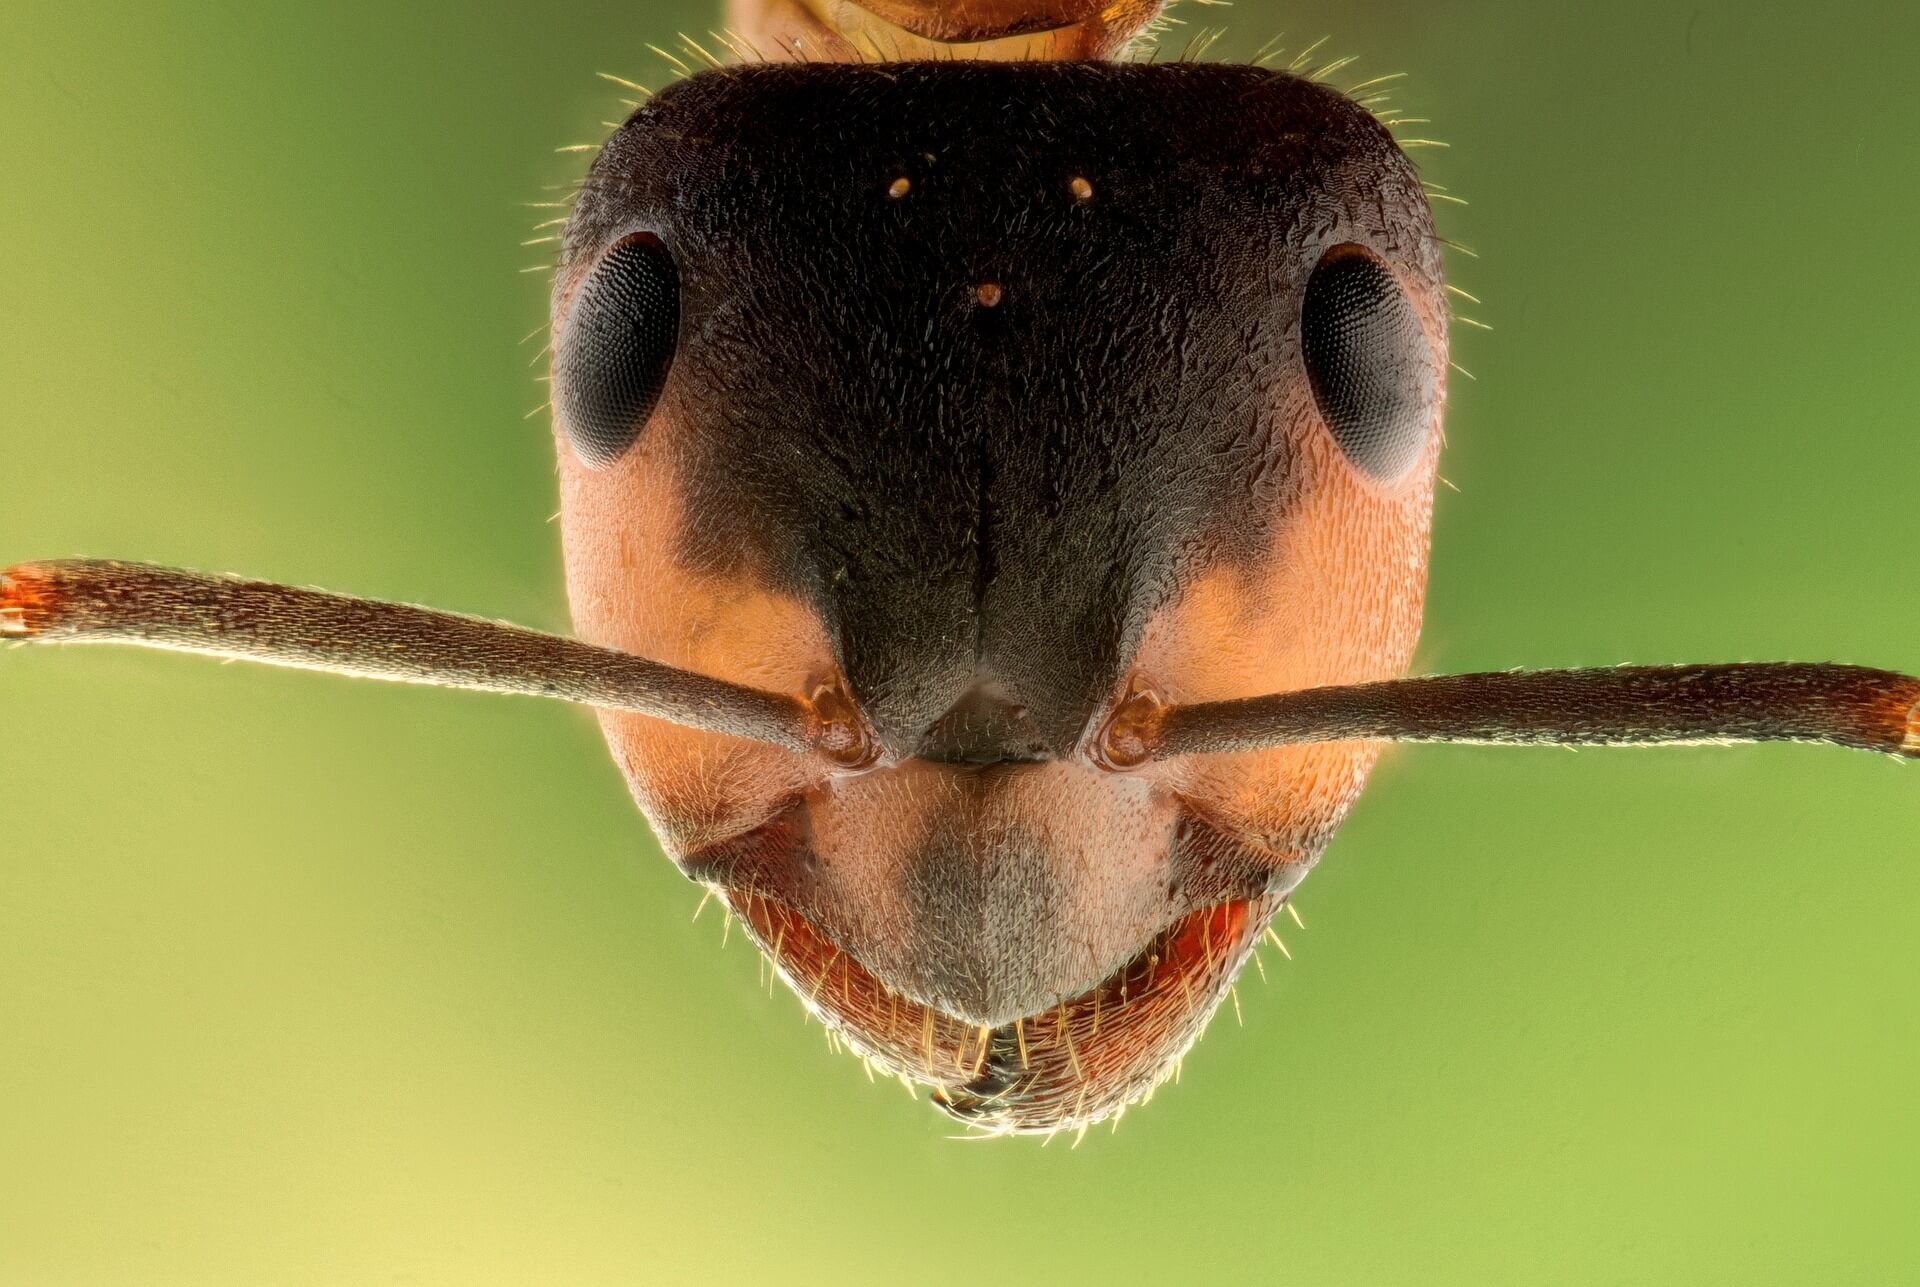 close up of ant's face